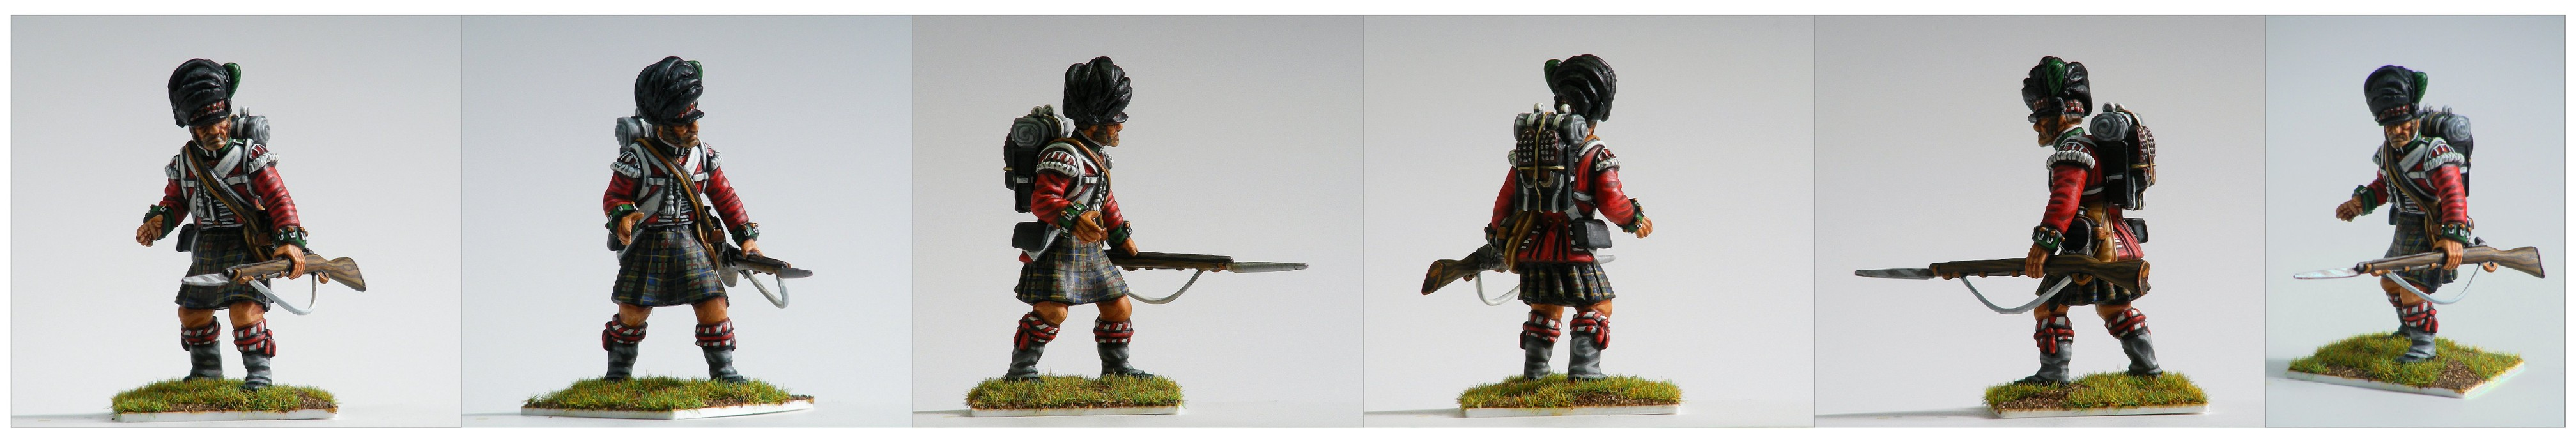 54mm Victrix Highlander